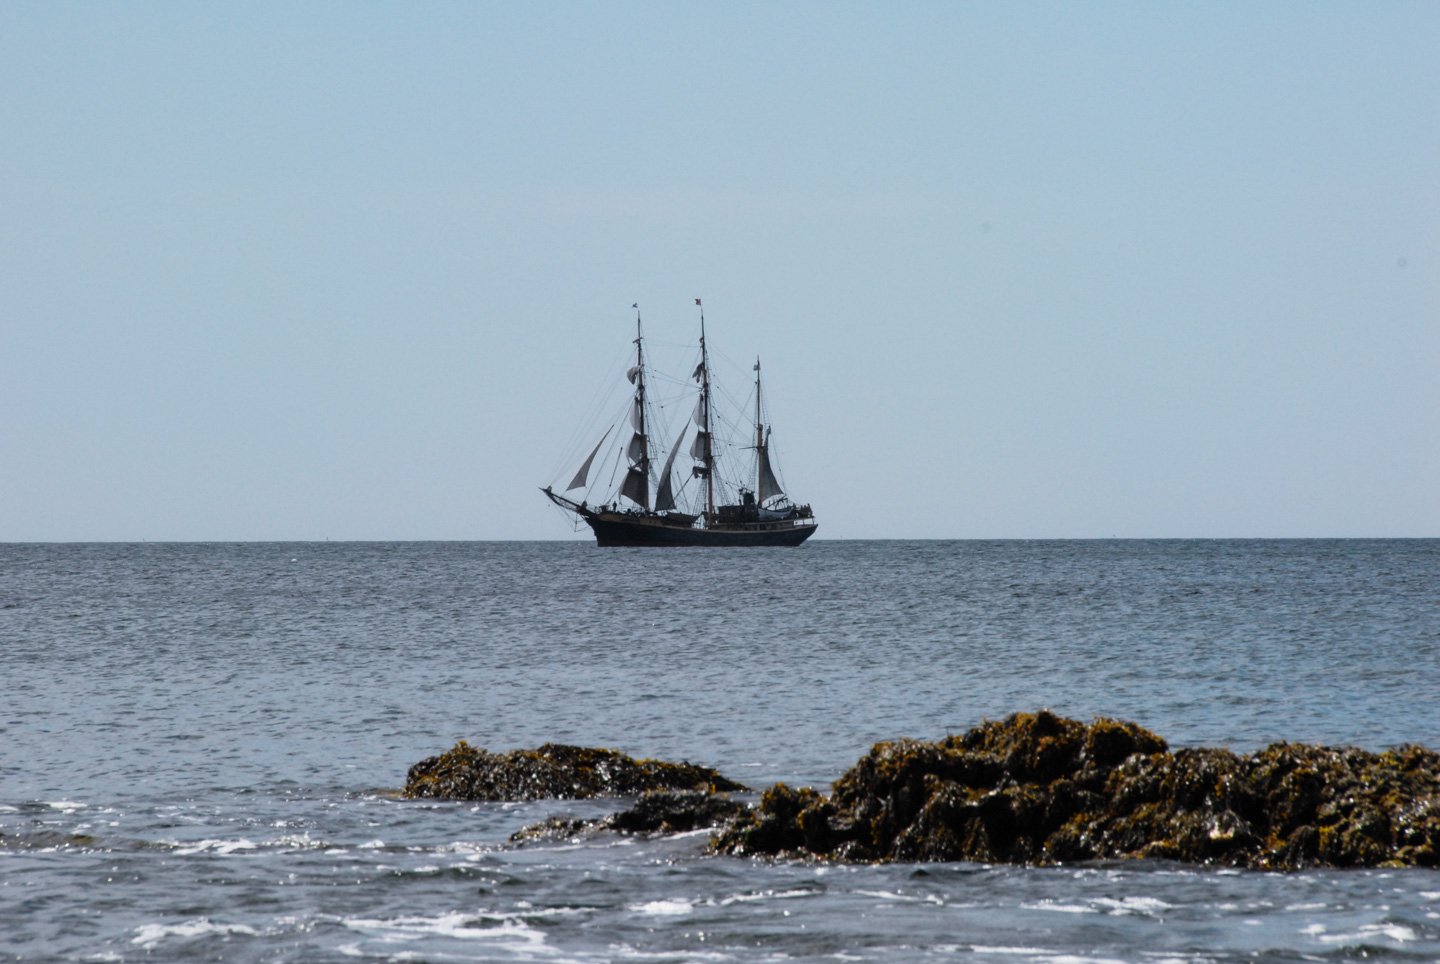 Tall ship with sails furled